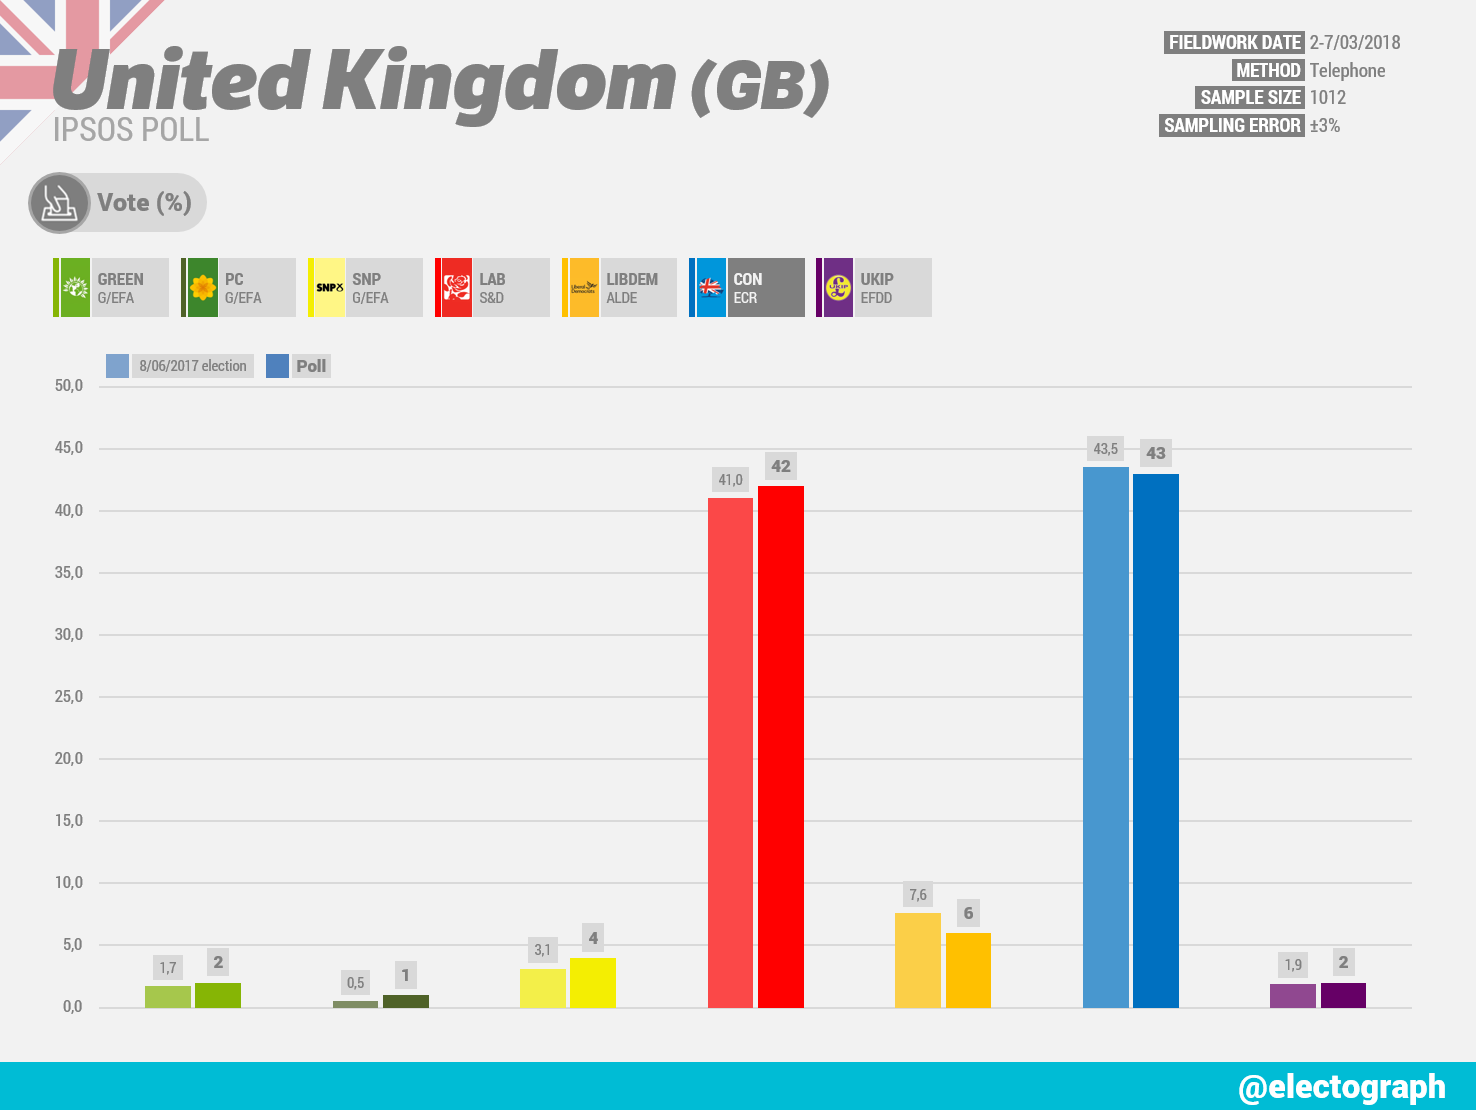 UNITED KINGDOM Ipsos poll chart, March 2018